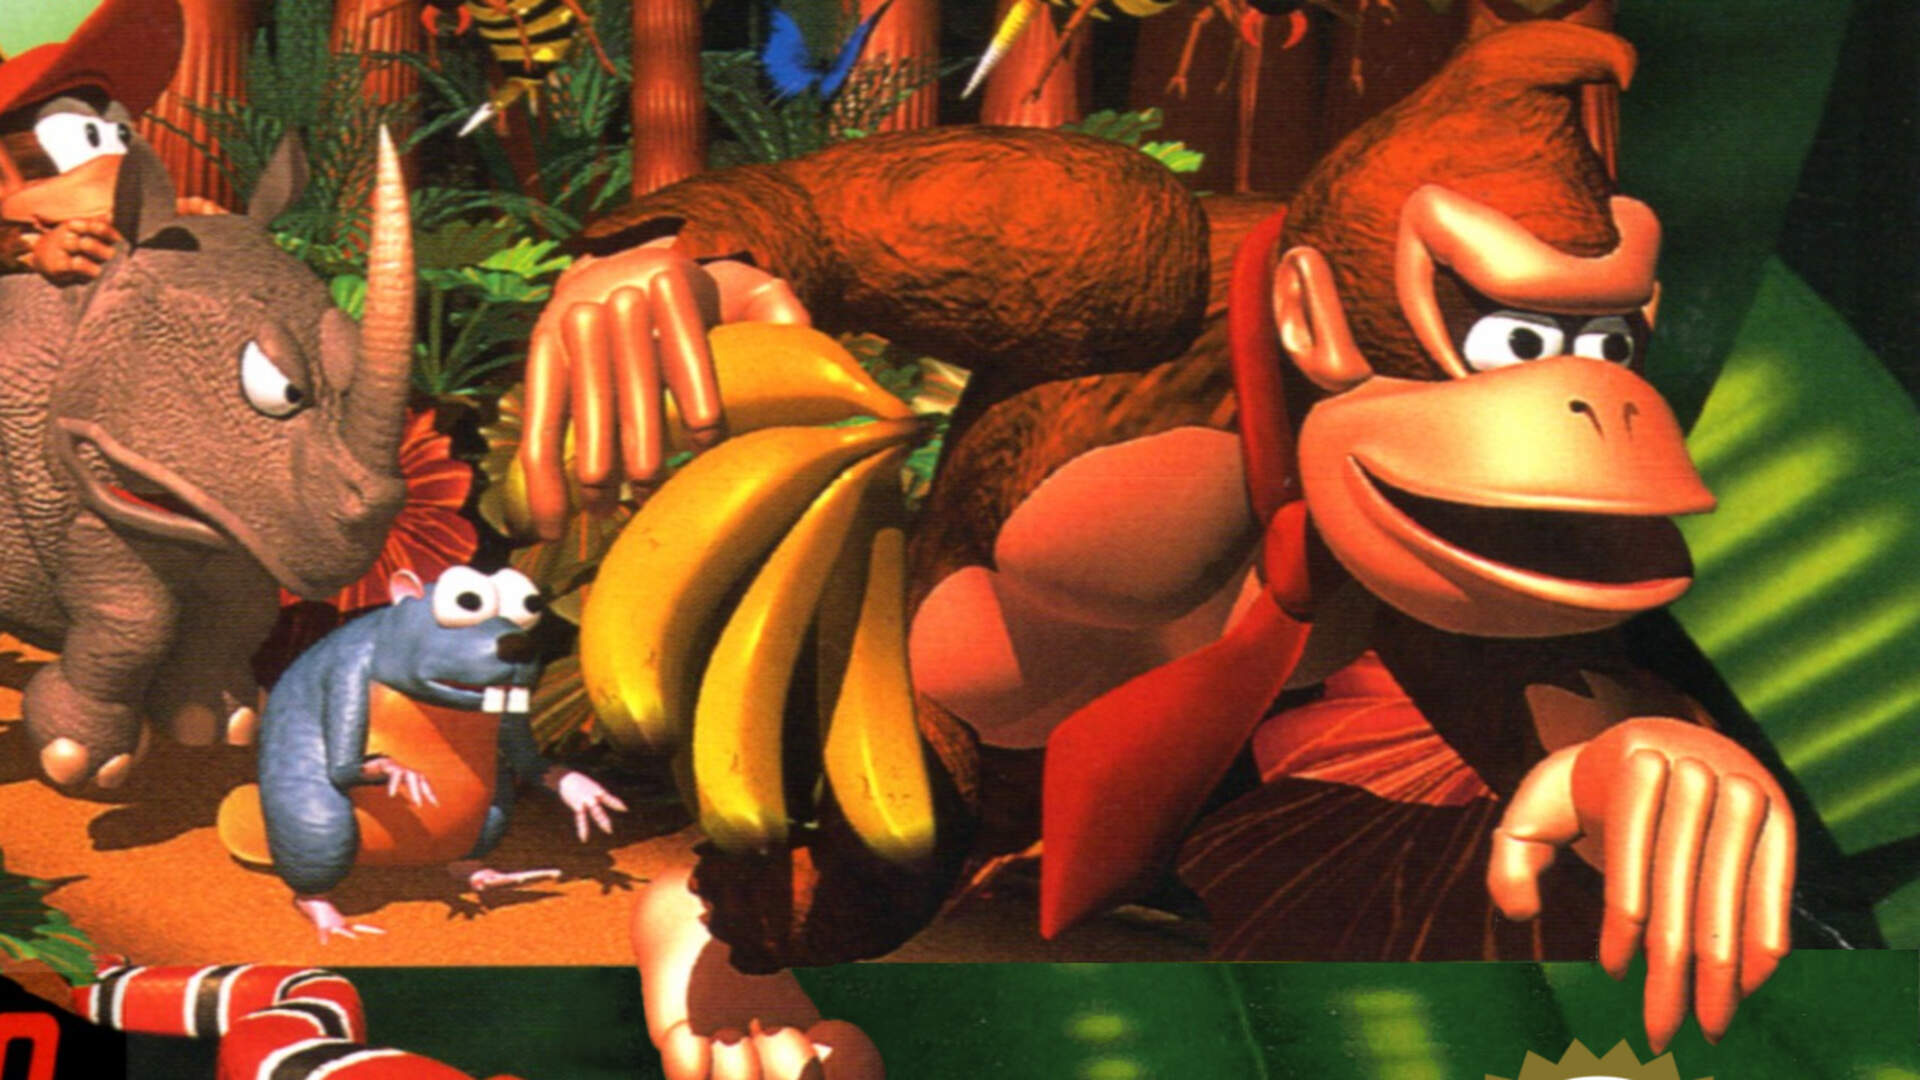 Nintendo Switch Online Members Get Donkey Kong Country With New Features Next Week [Correction]